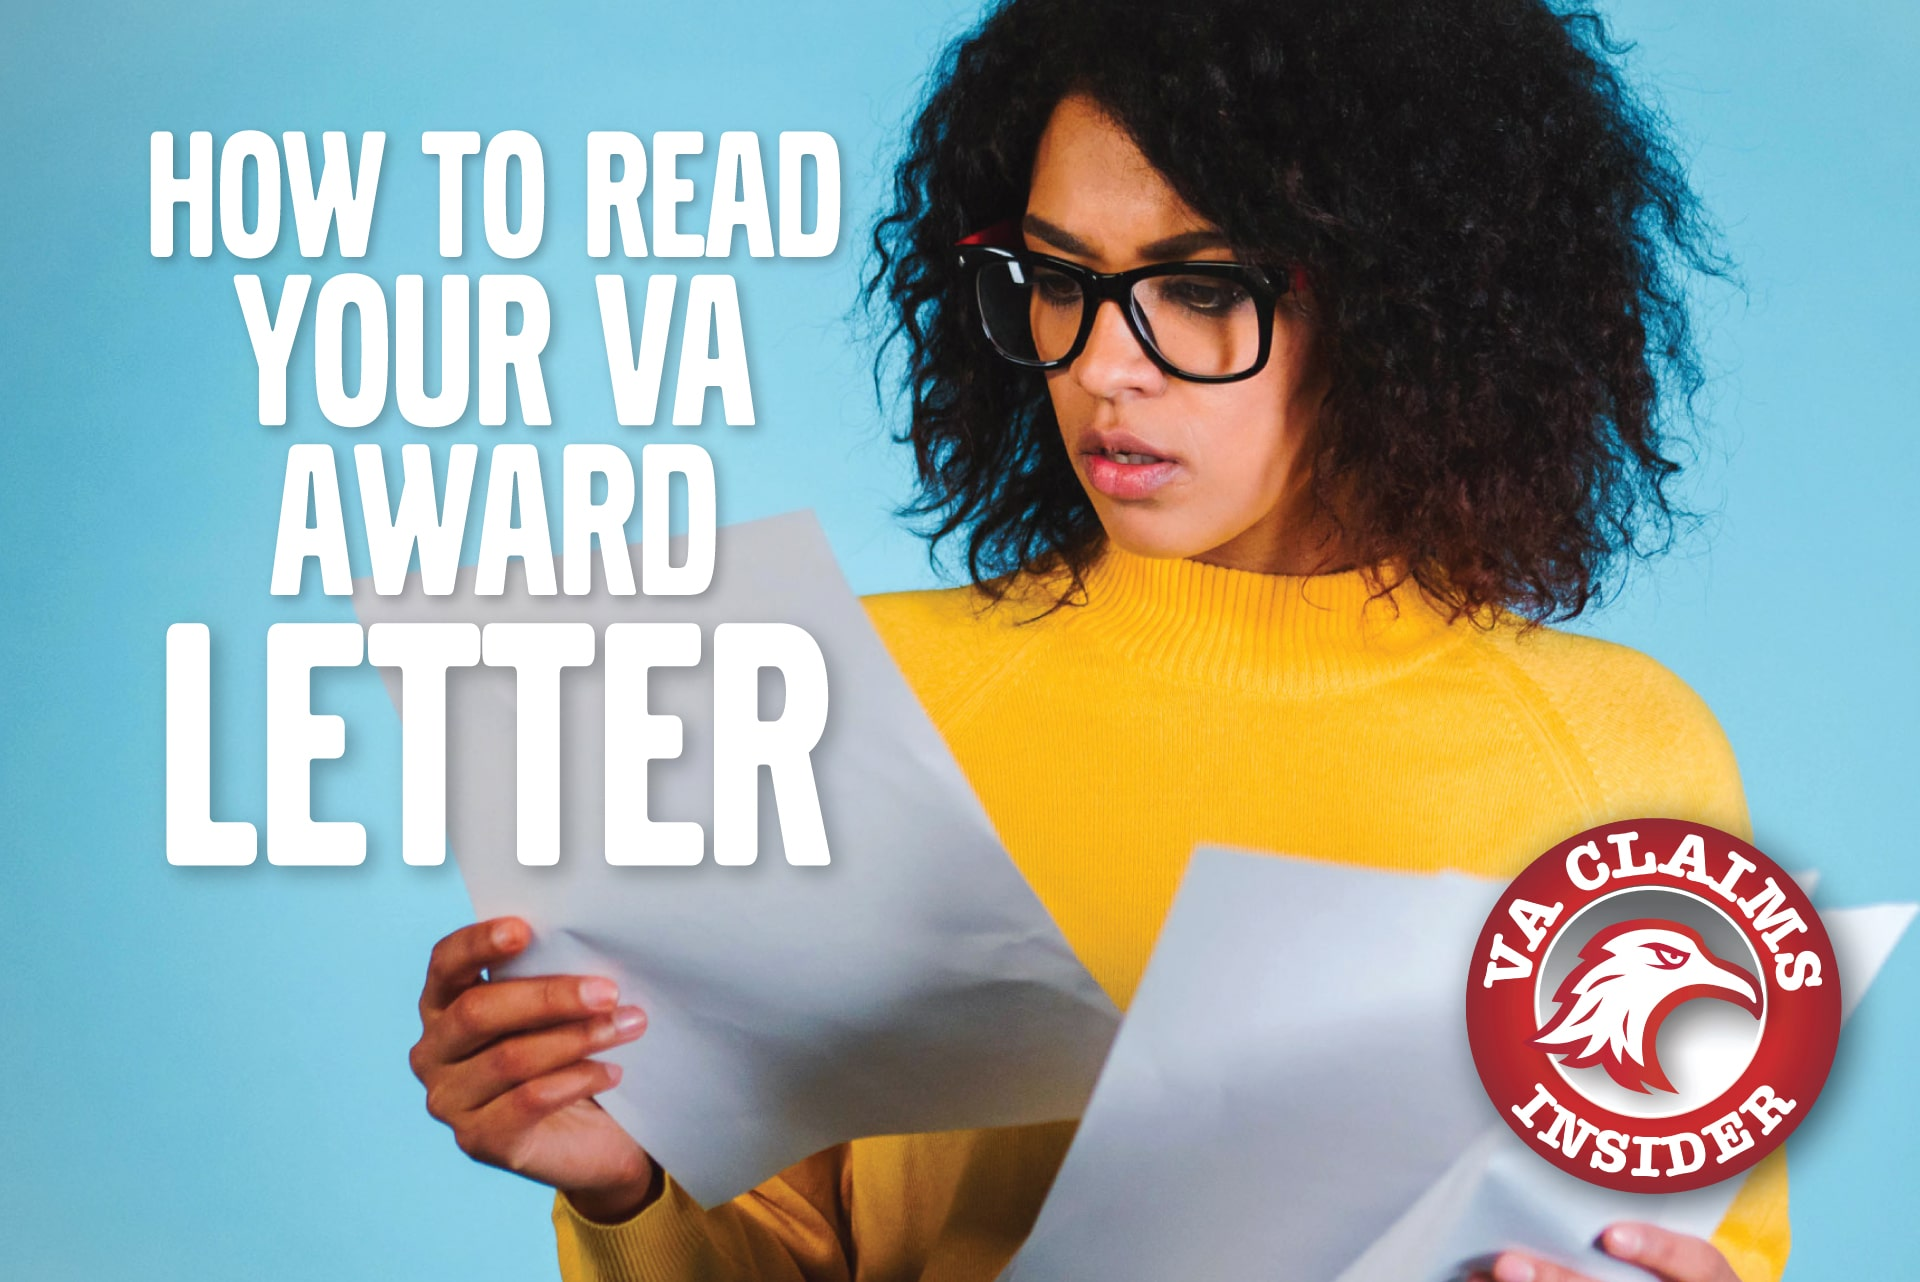 How Do I Read My VA Award Letter? Blog How to Read Your VA Award Letter min